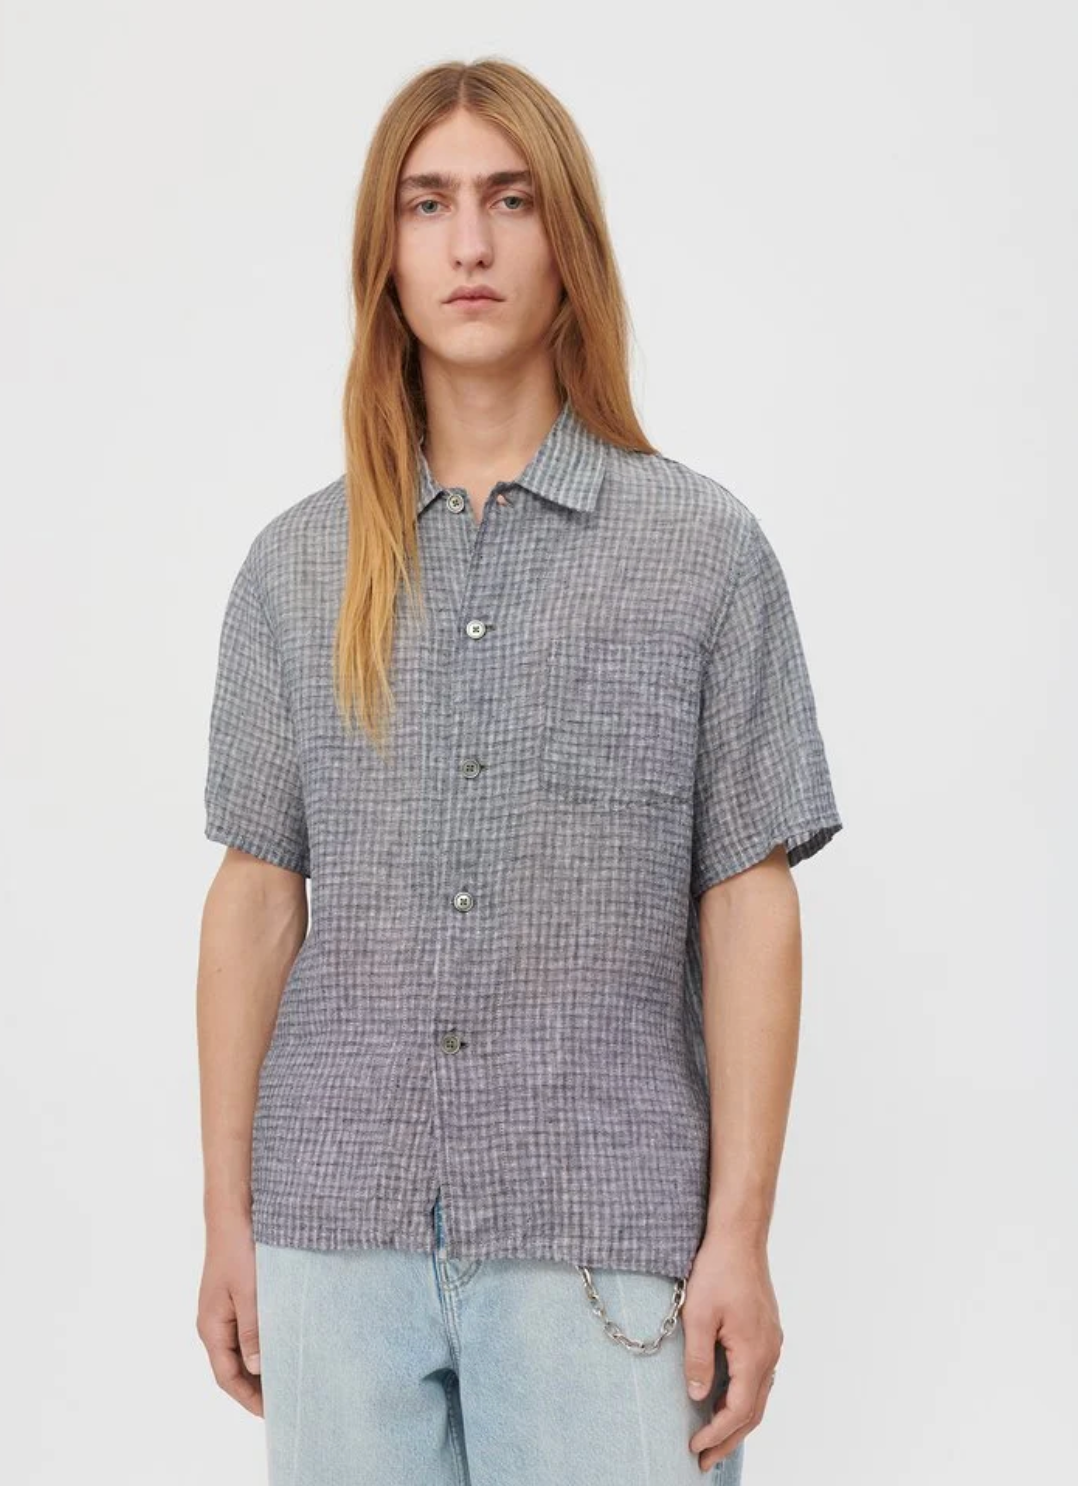 BOX SHIRT SHORT SLEEVE | SALT + PEPPER STRIPE